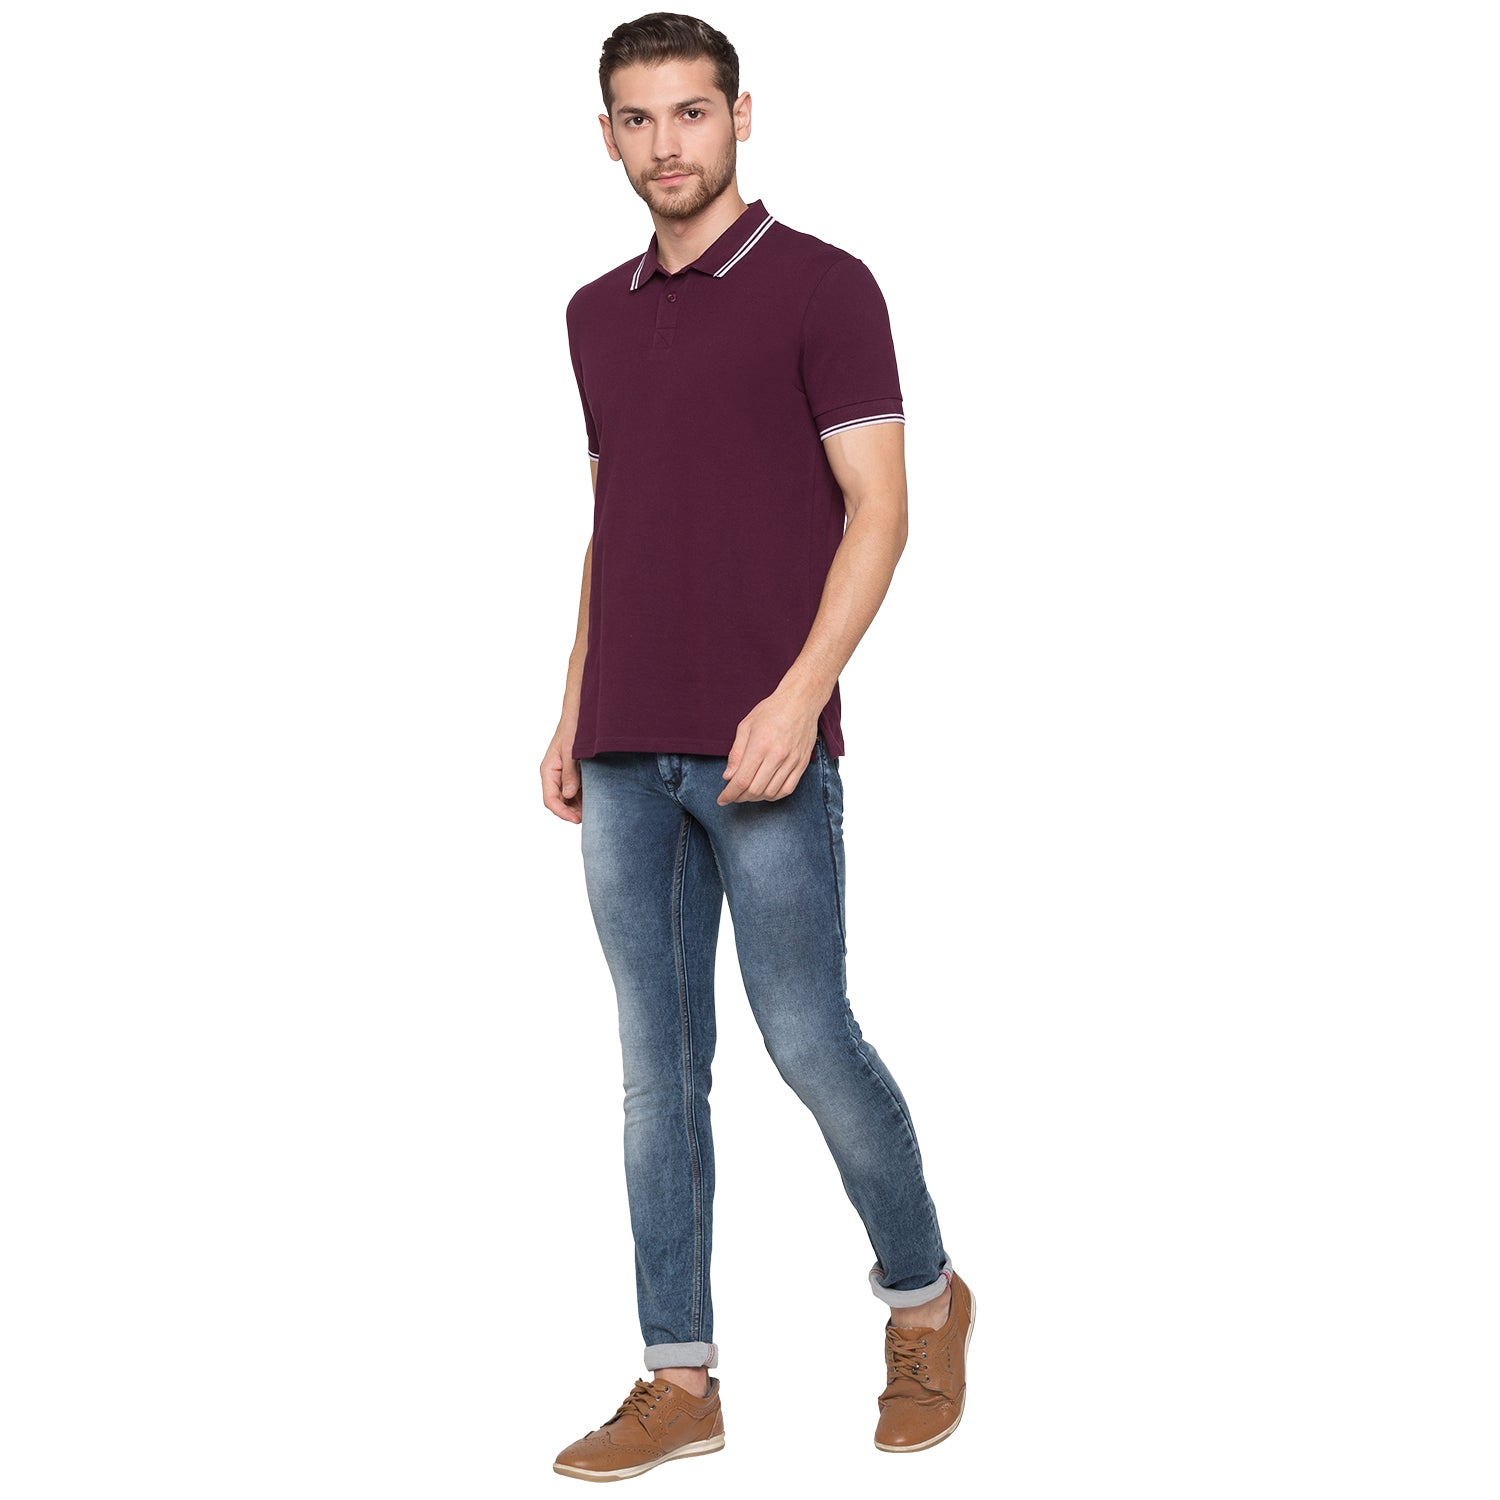 Globus Maroon Solid Polo T-Shirt4